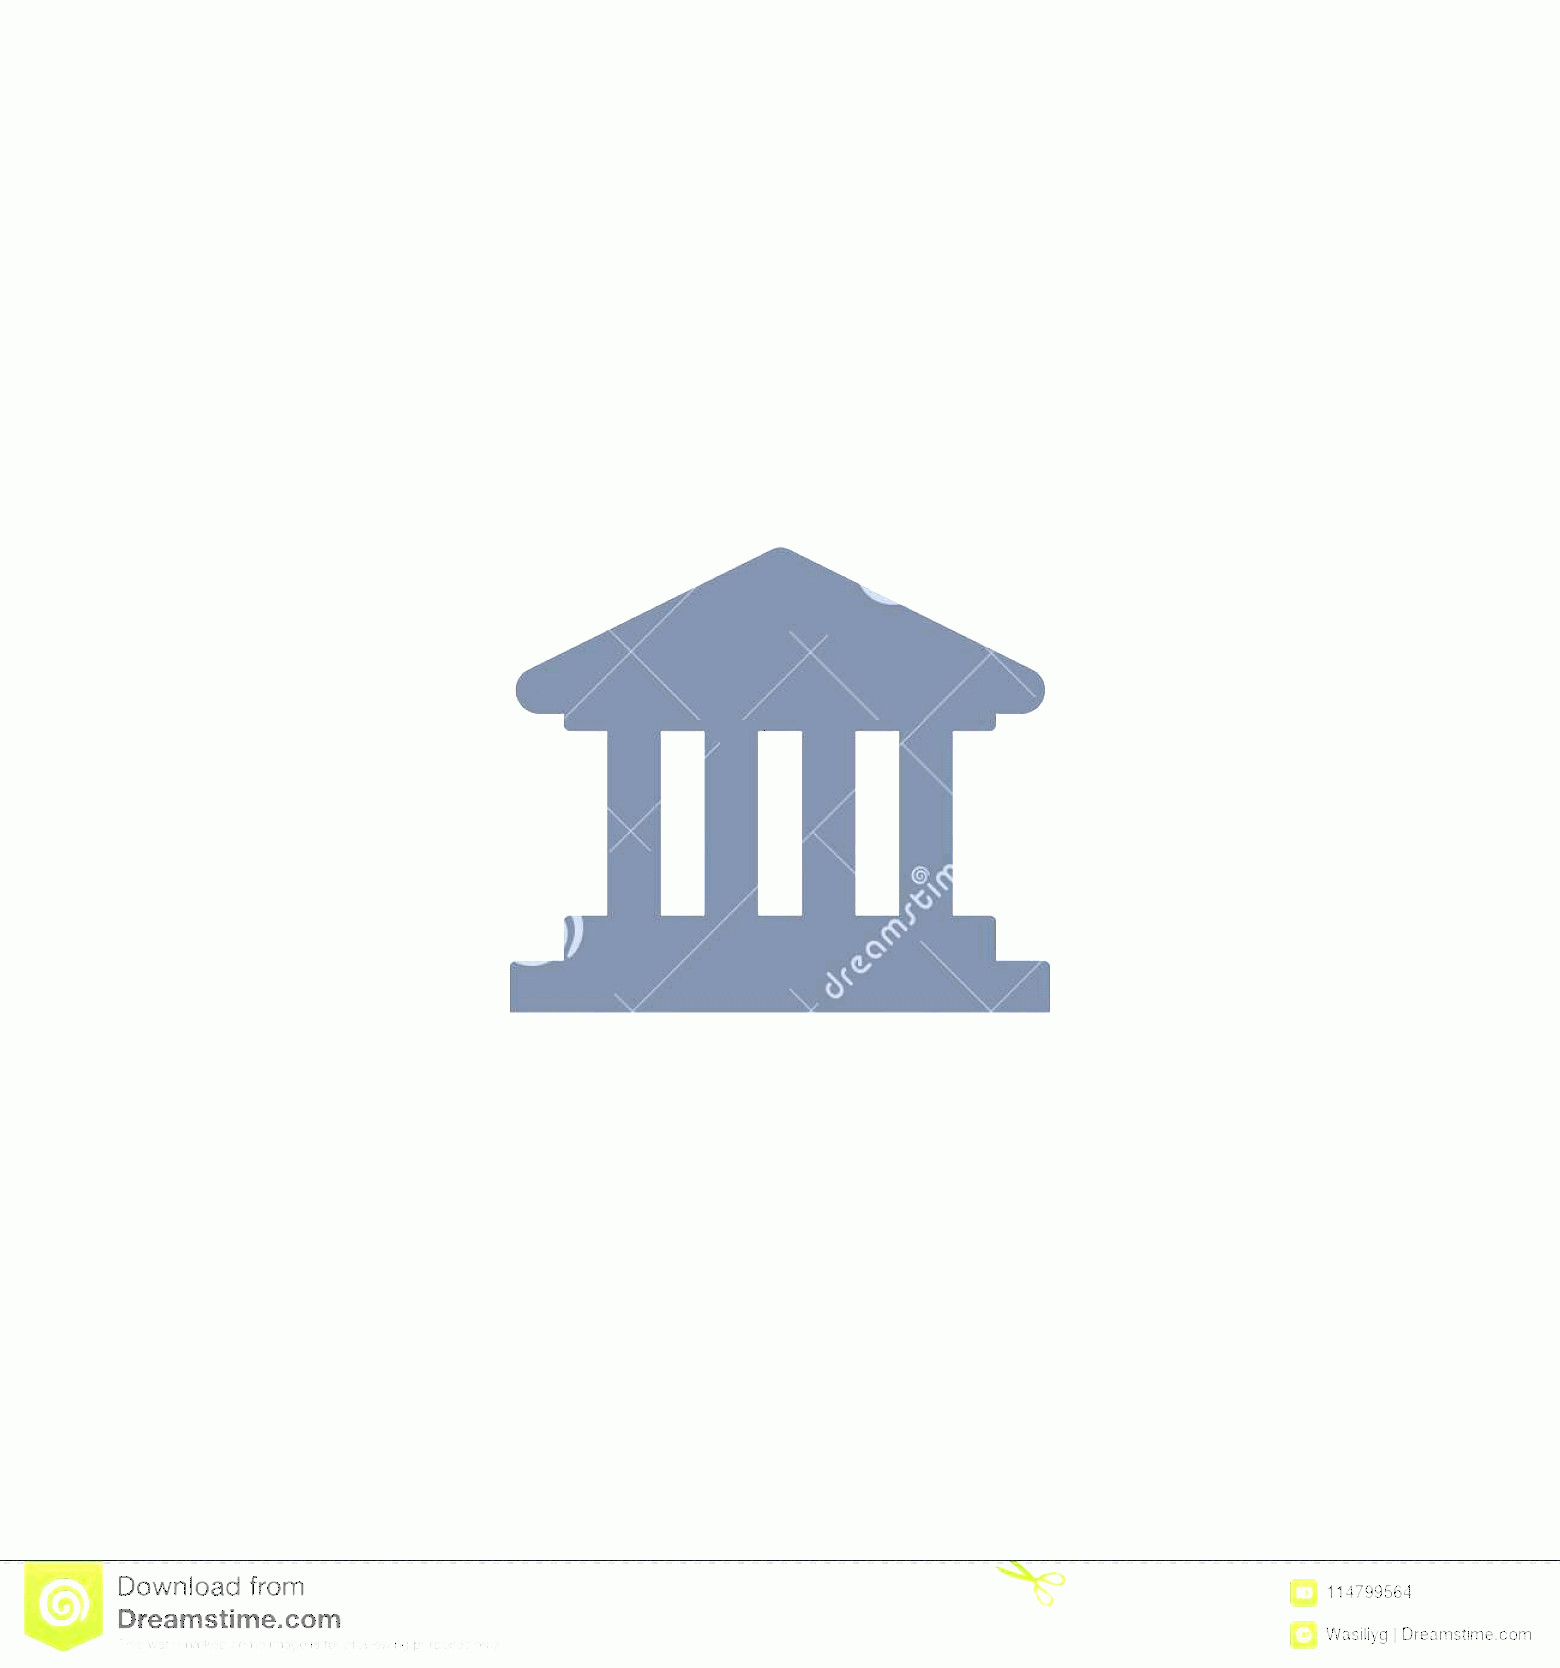 Court Building Vector: Bank Icon Court Building Vector Icon Bank Icon Court Building Vector Best Line Icon White Background Eps Image